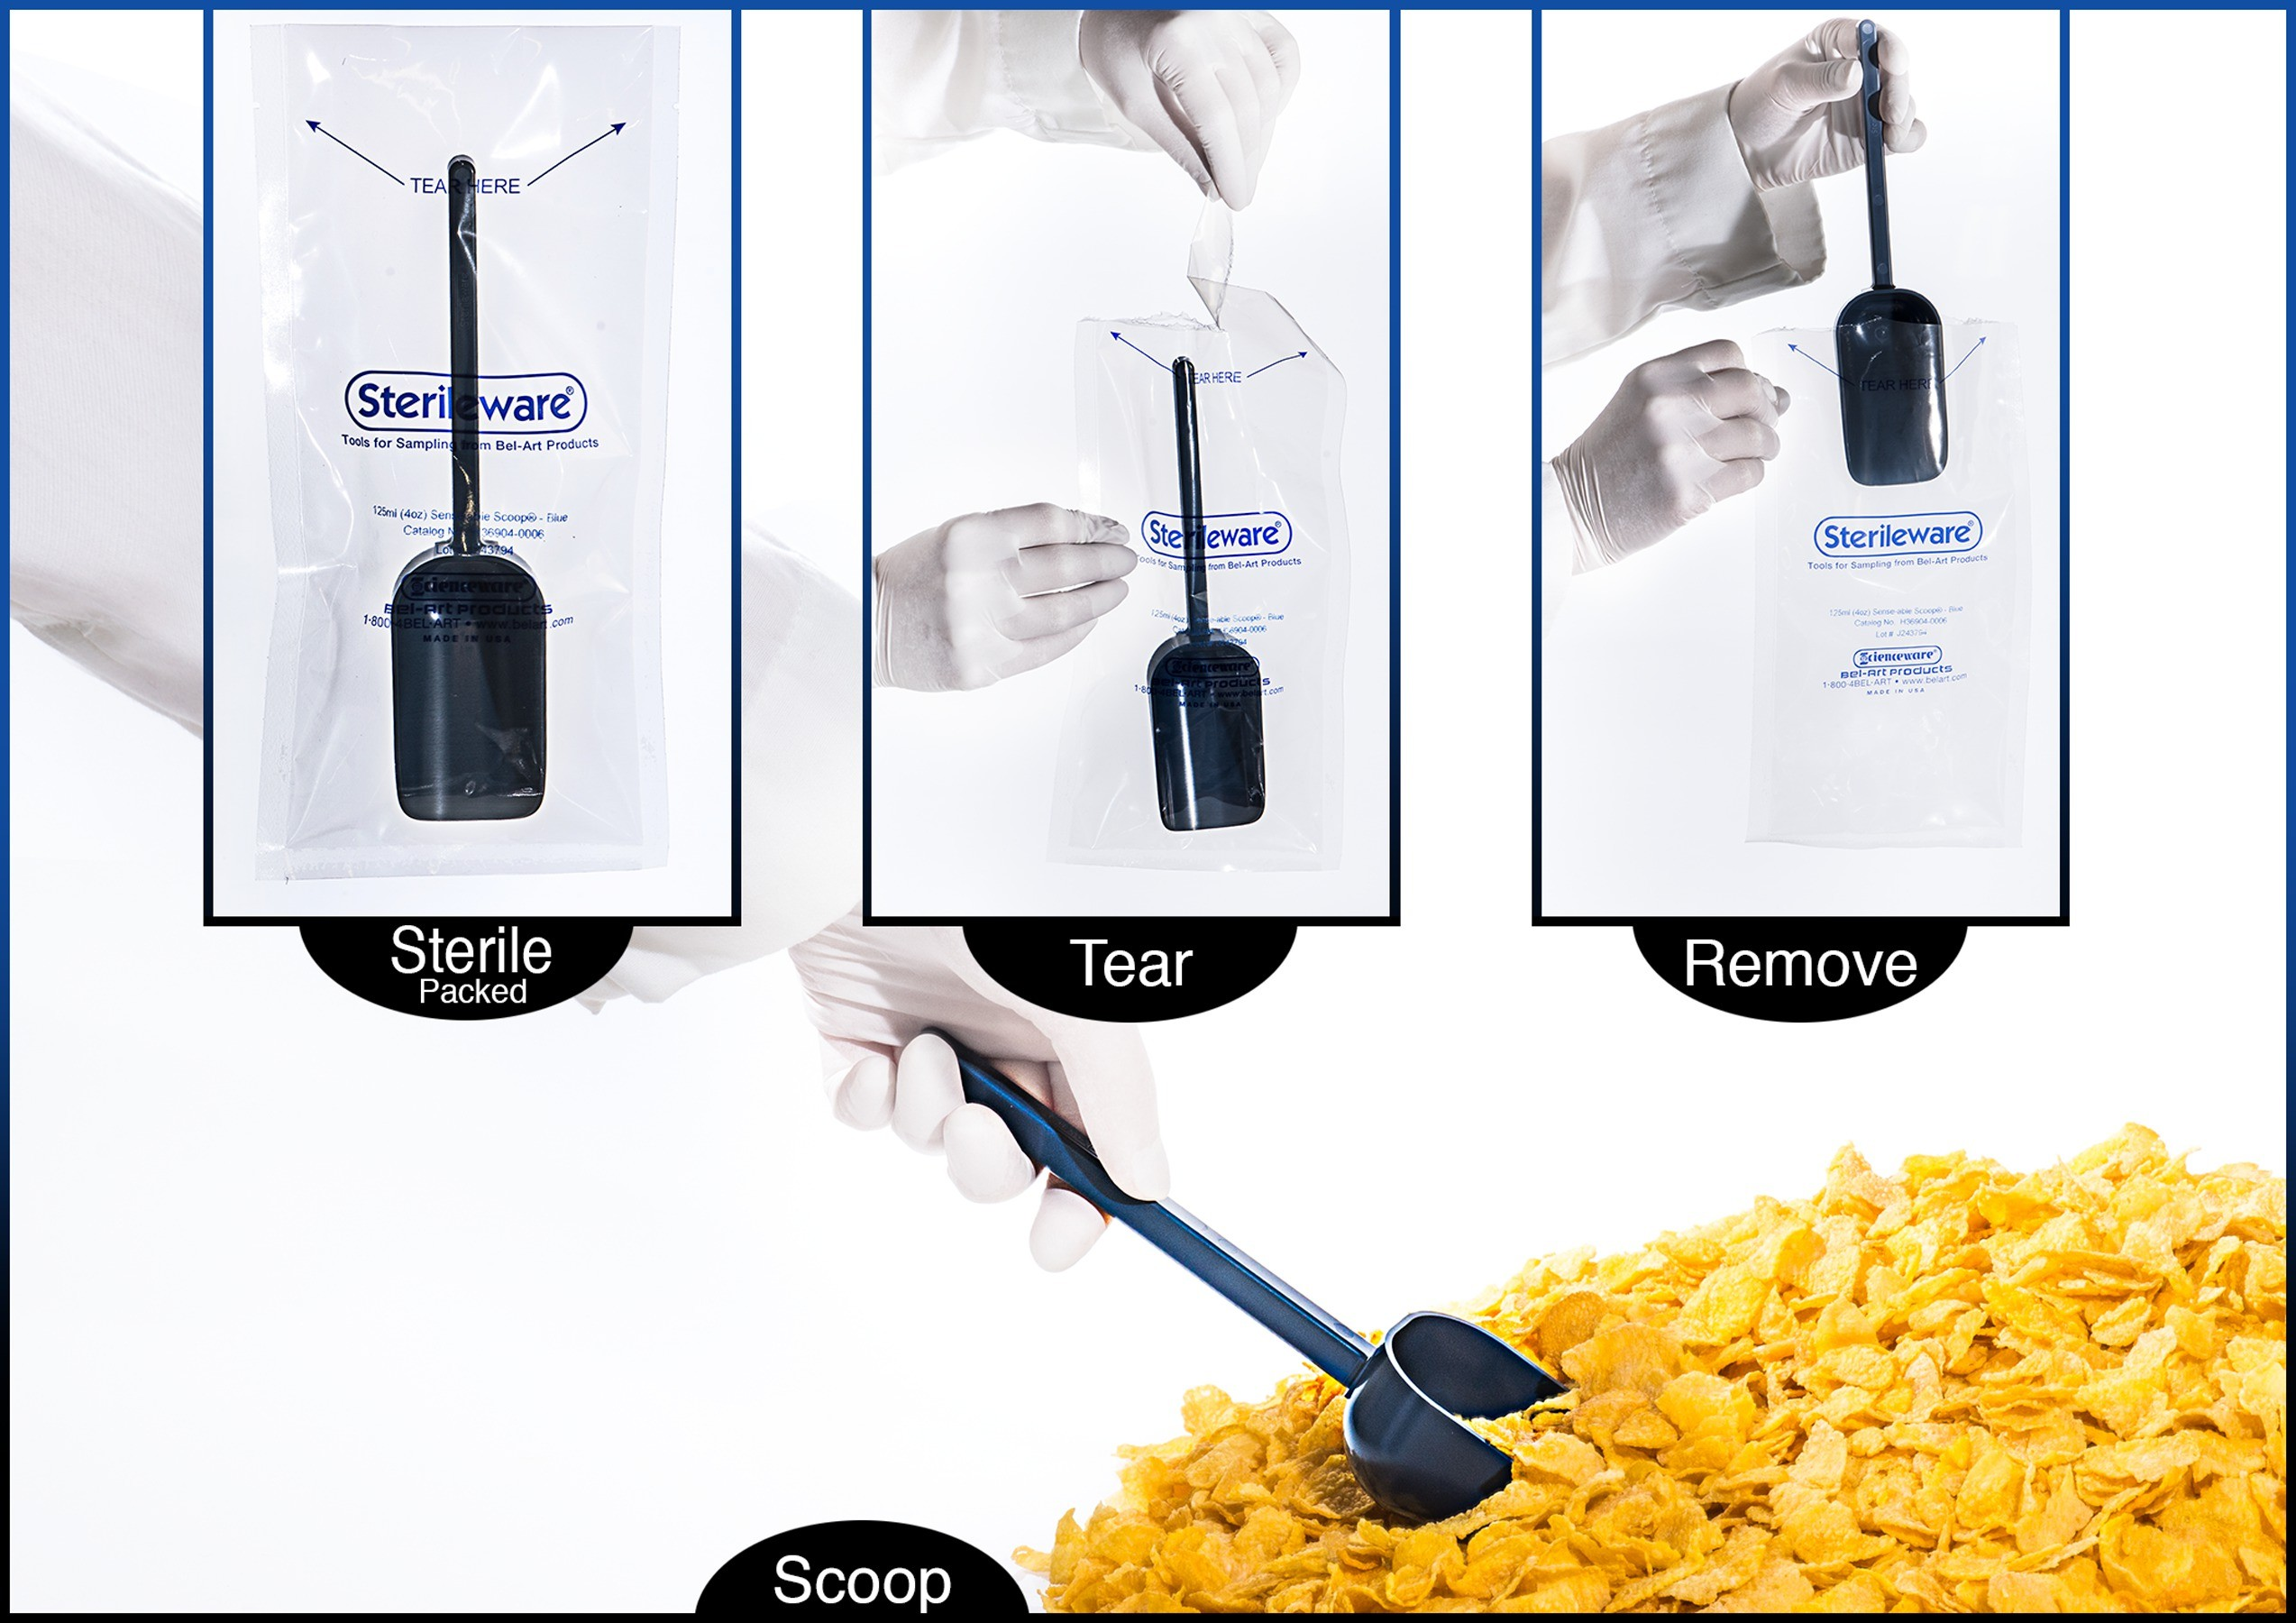 Sterileware Sense-able Scoops Metal Detectable, Sterile Sampling Tools